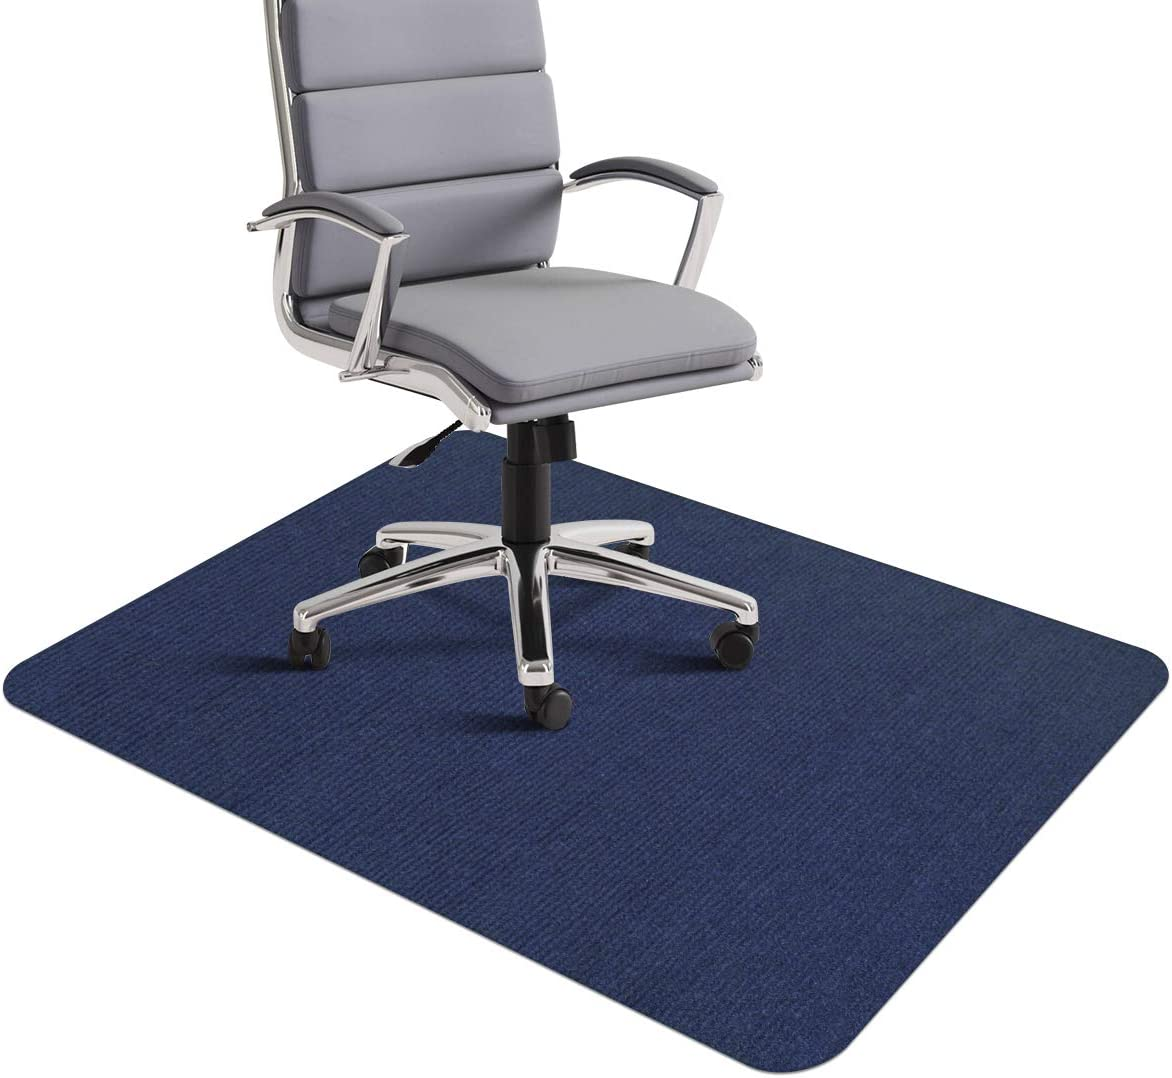 """Office Chair Mat, Office Desk Chair Mat for Hardwood Floors, 1/6"""" Thick 35""""x55"""" Hard Floor Protector Mat, Multi-Purpose Low-Pile Chair Carpet for Home & Office (Dark Blue)"""